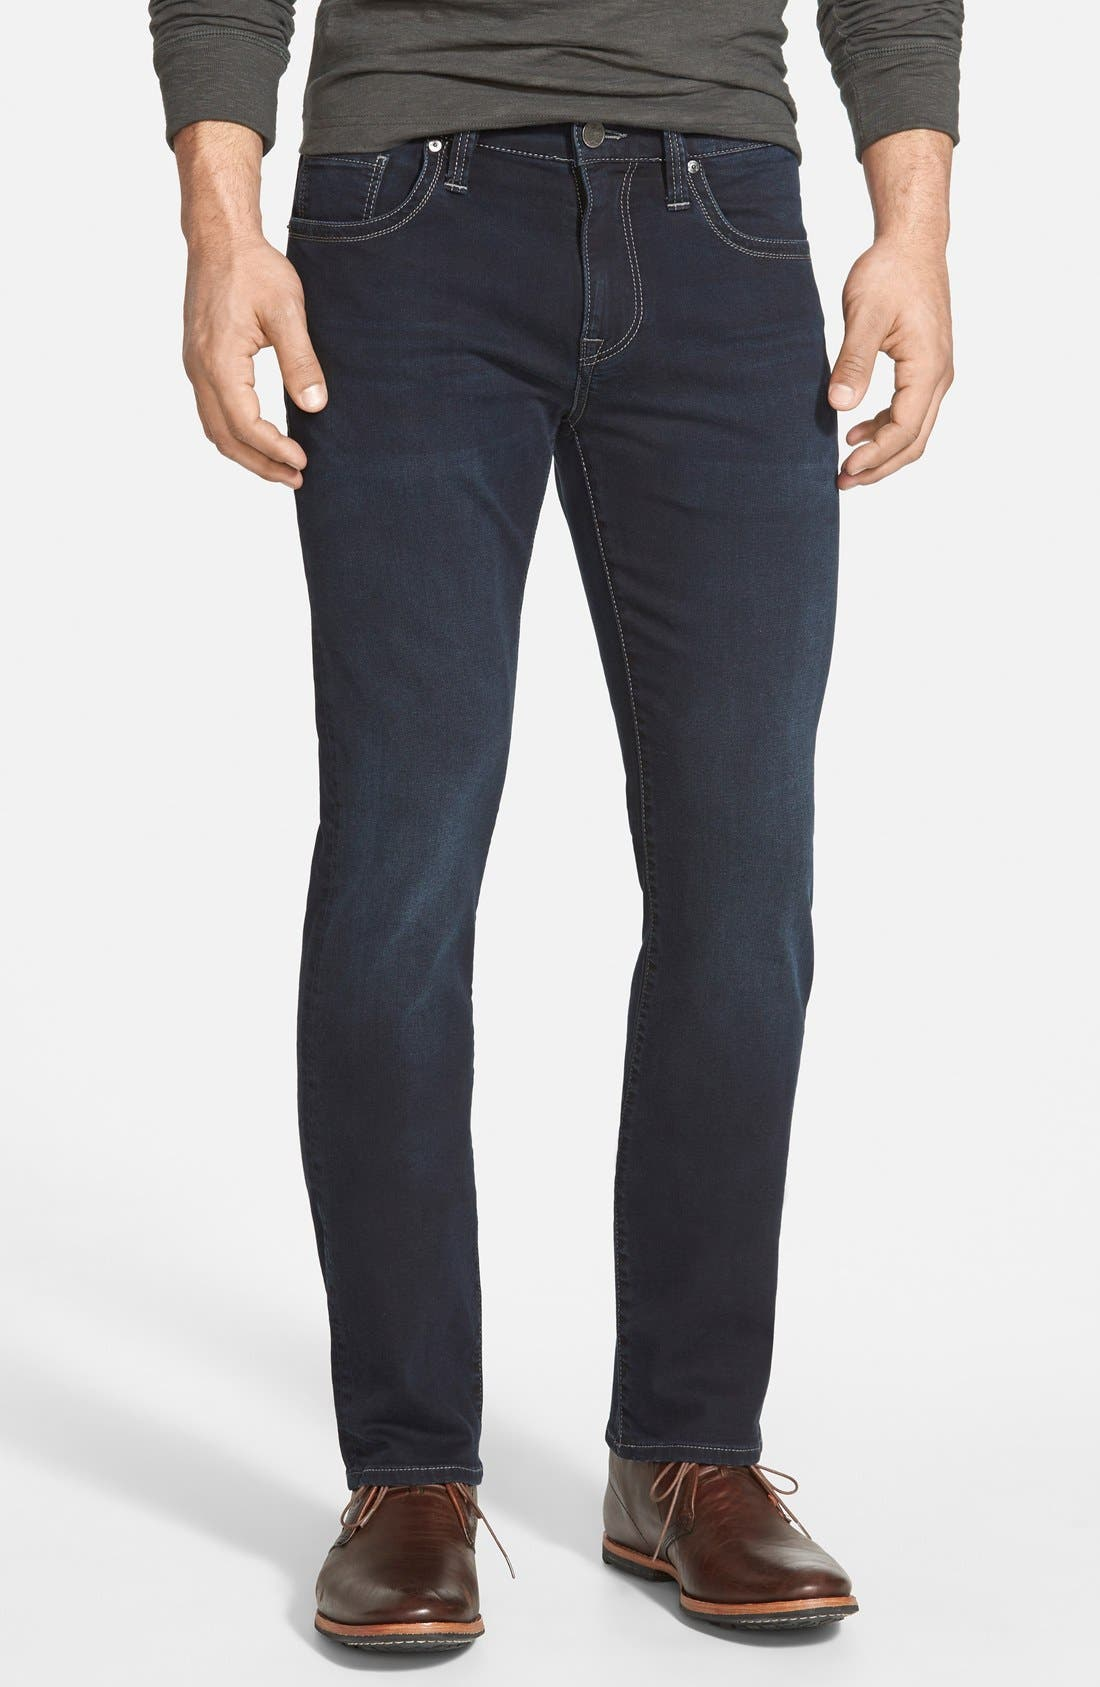 Courage Relaxed Fit Jeans,                             Main thumbnail 1, color,                             MIDNIGHT AUSTIN